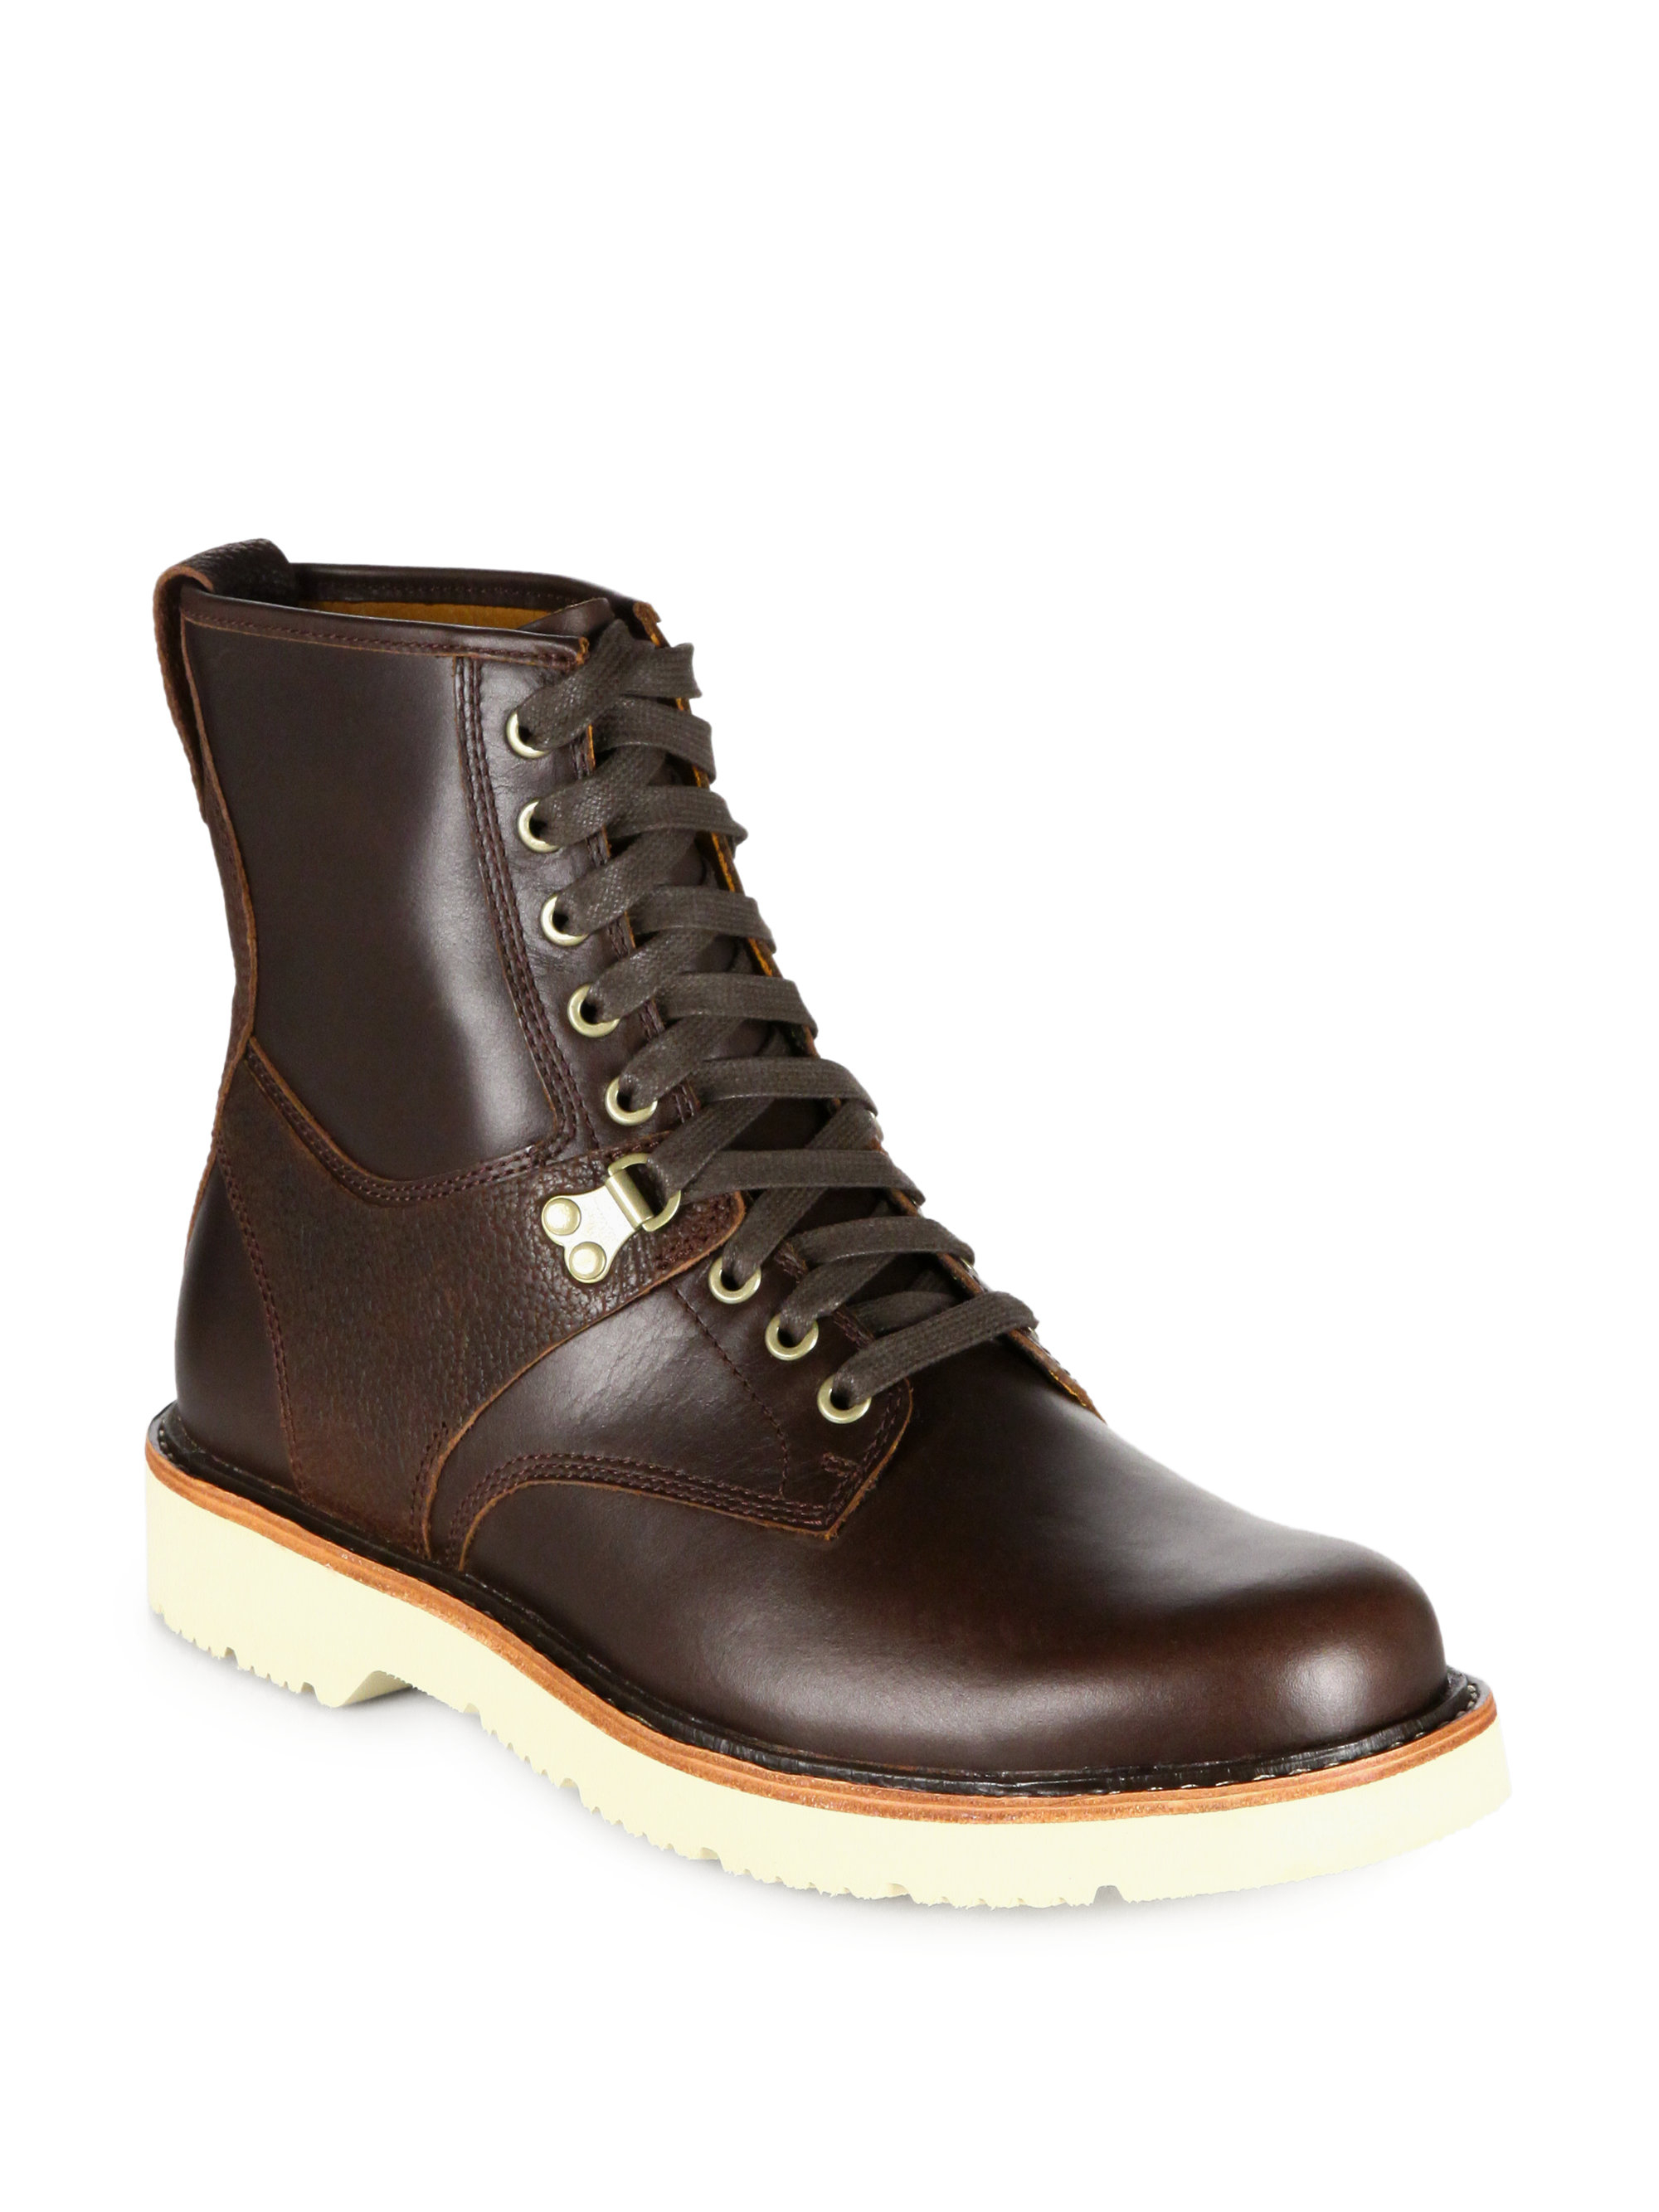 Rubber Rings For Men >> Timberland Abington Quarryville Embossed Leather Boots in Brown for Men   Lyst